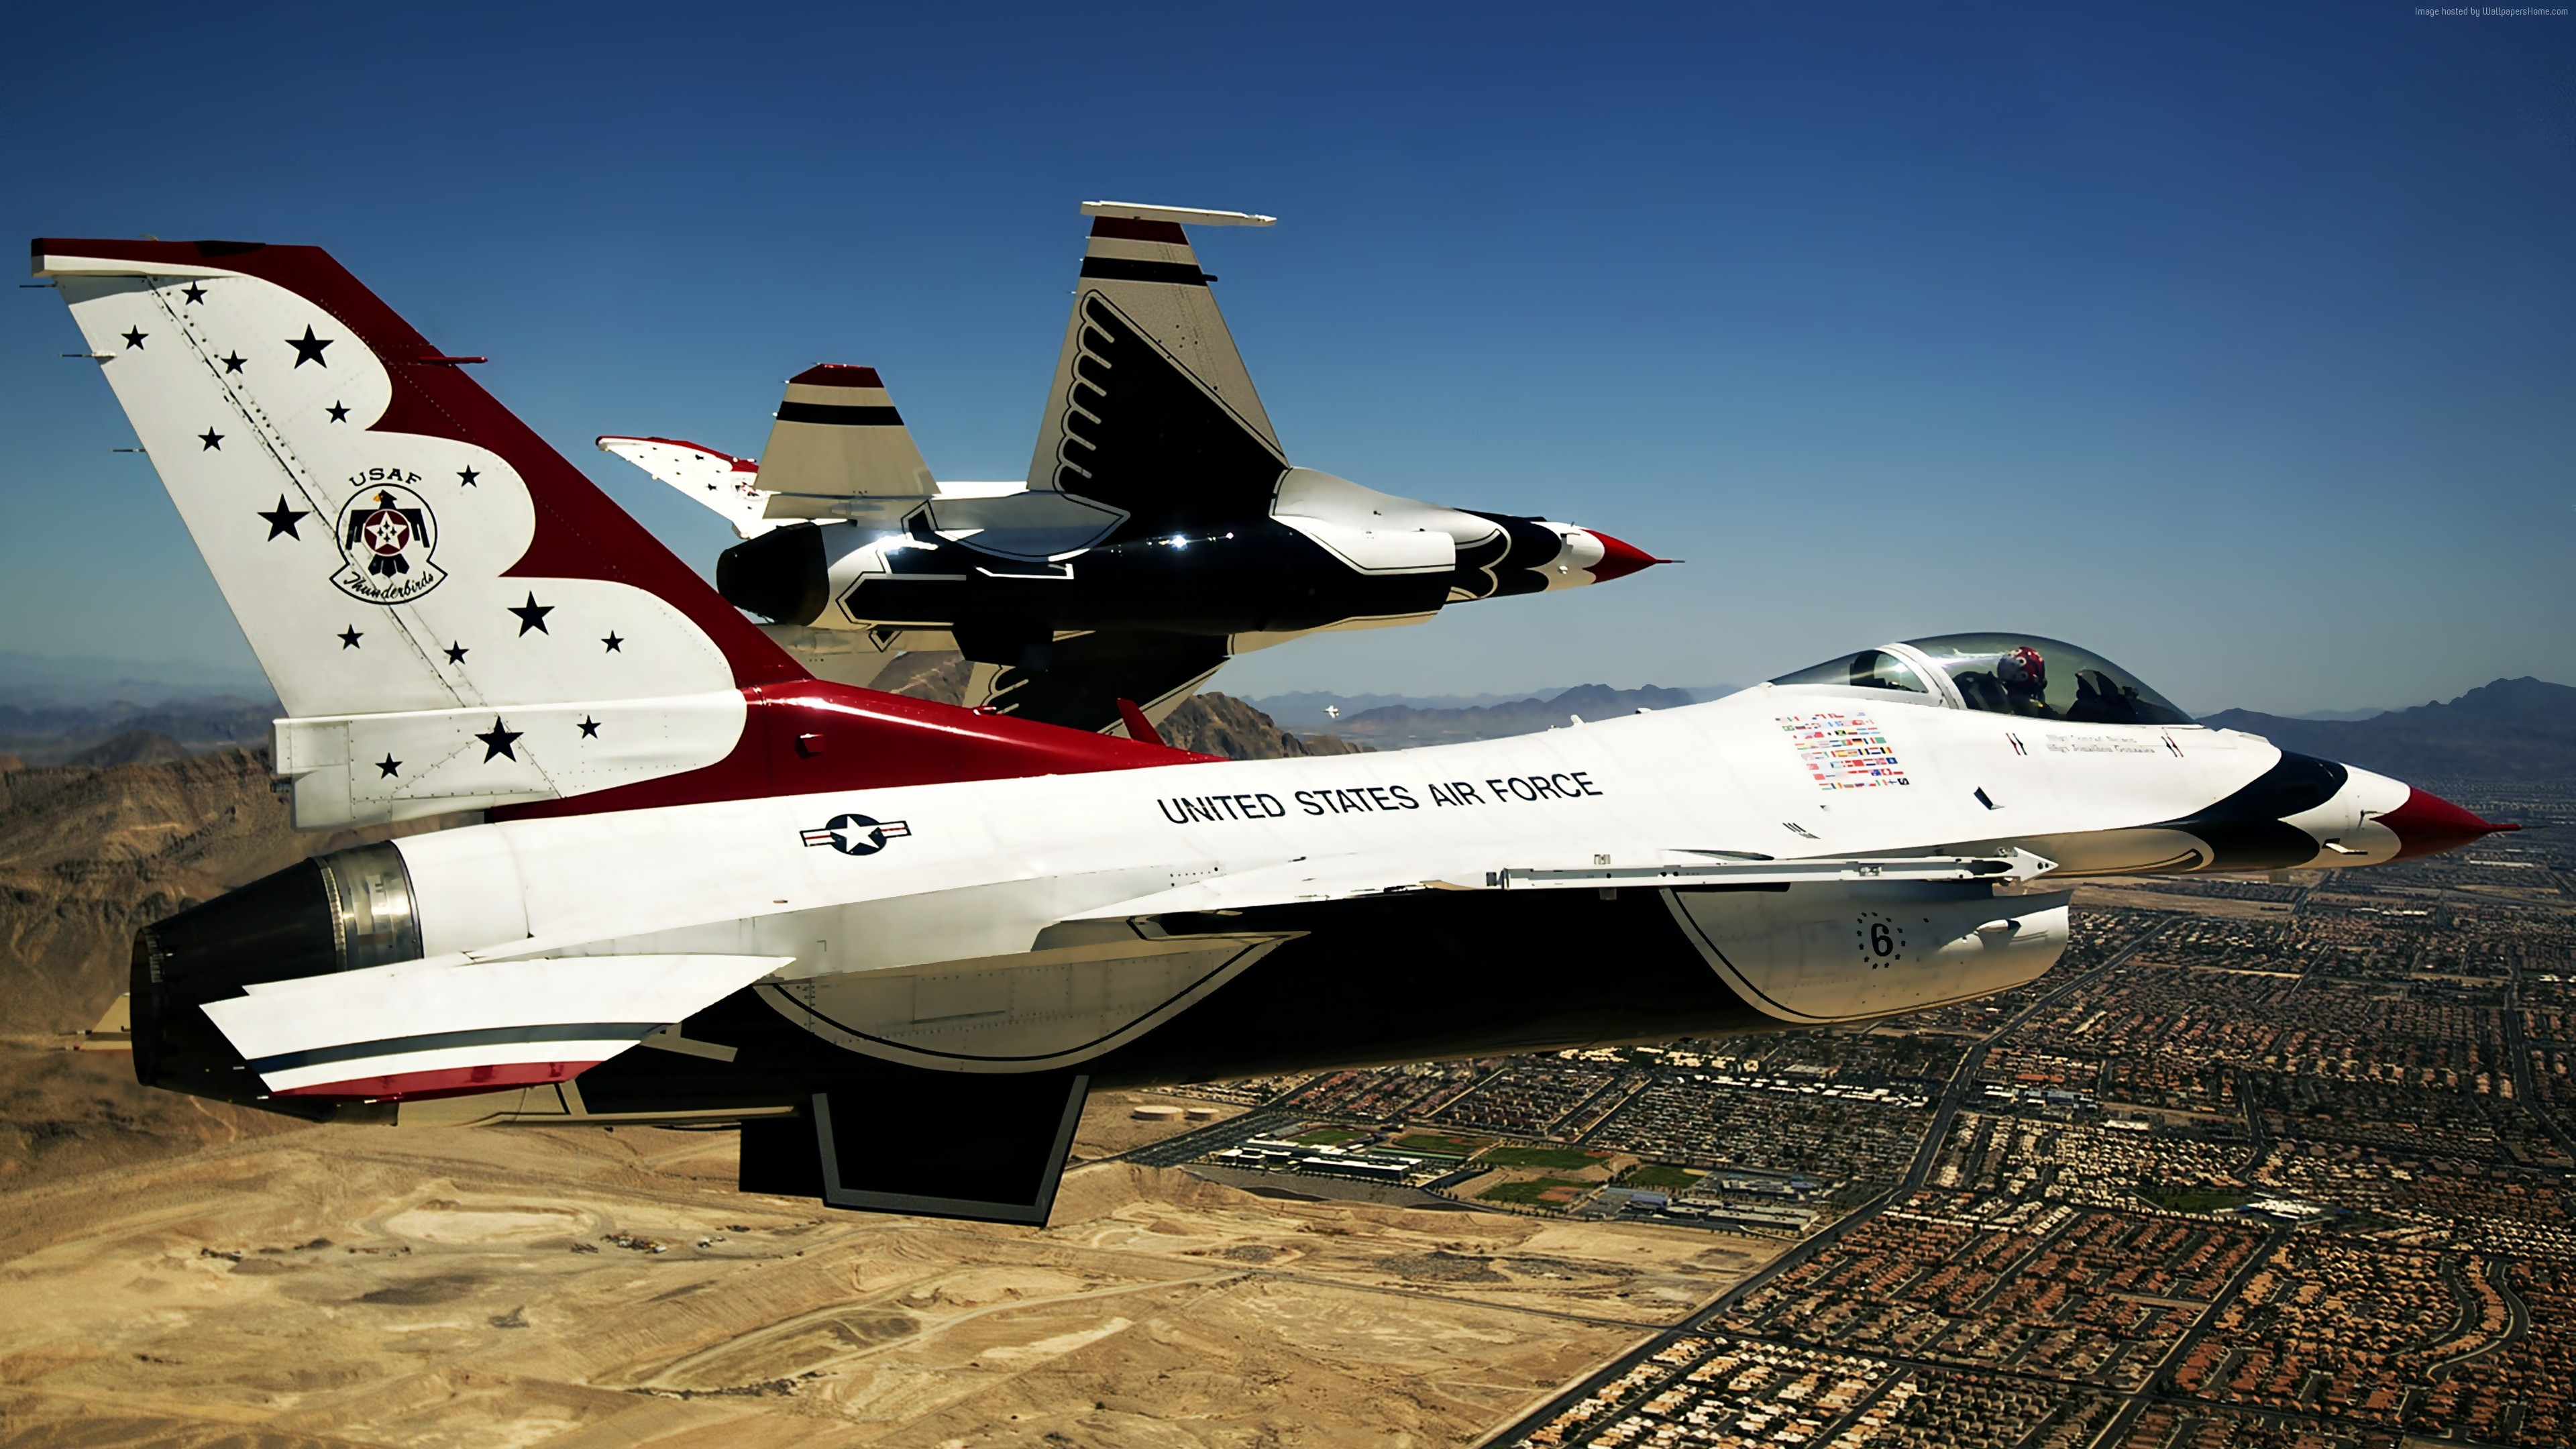 Wallpaper Thunderbird f-16, fighter aircraft, U.S. Airforce, Military